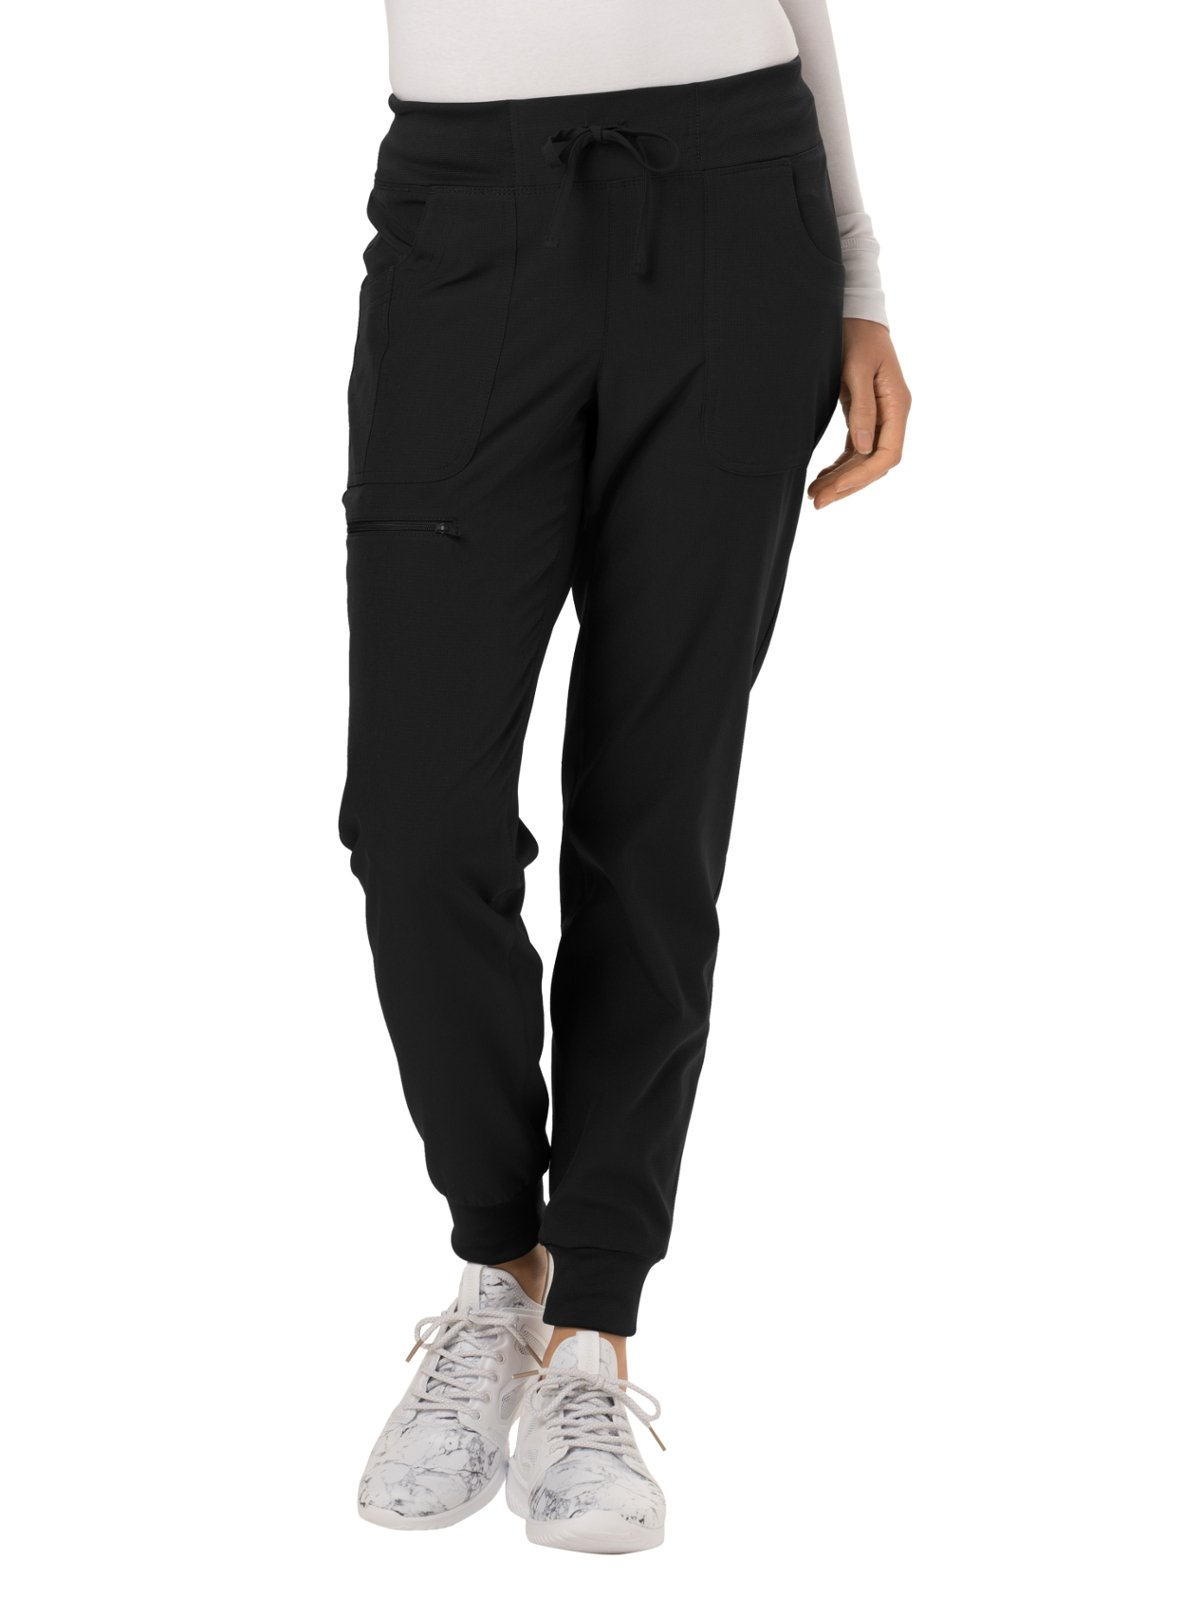 HeartSoul Break On Through Women's The Jogger Low Rise Tapered Leg Scrub Pant Small Black by HeartSoul